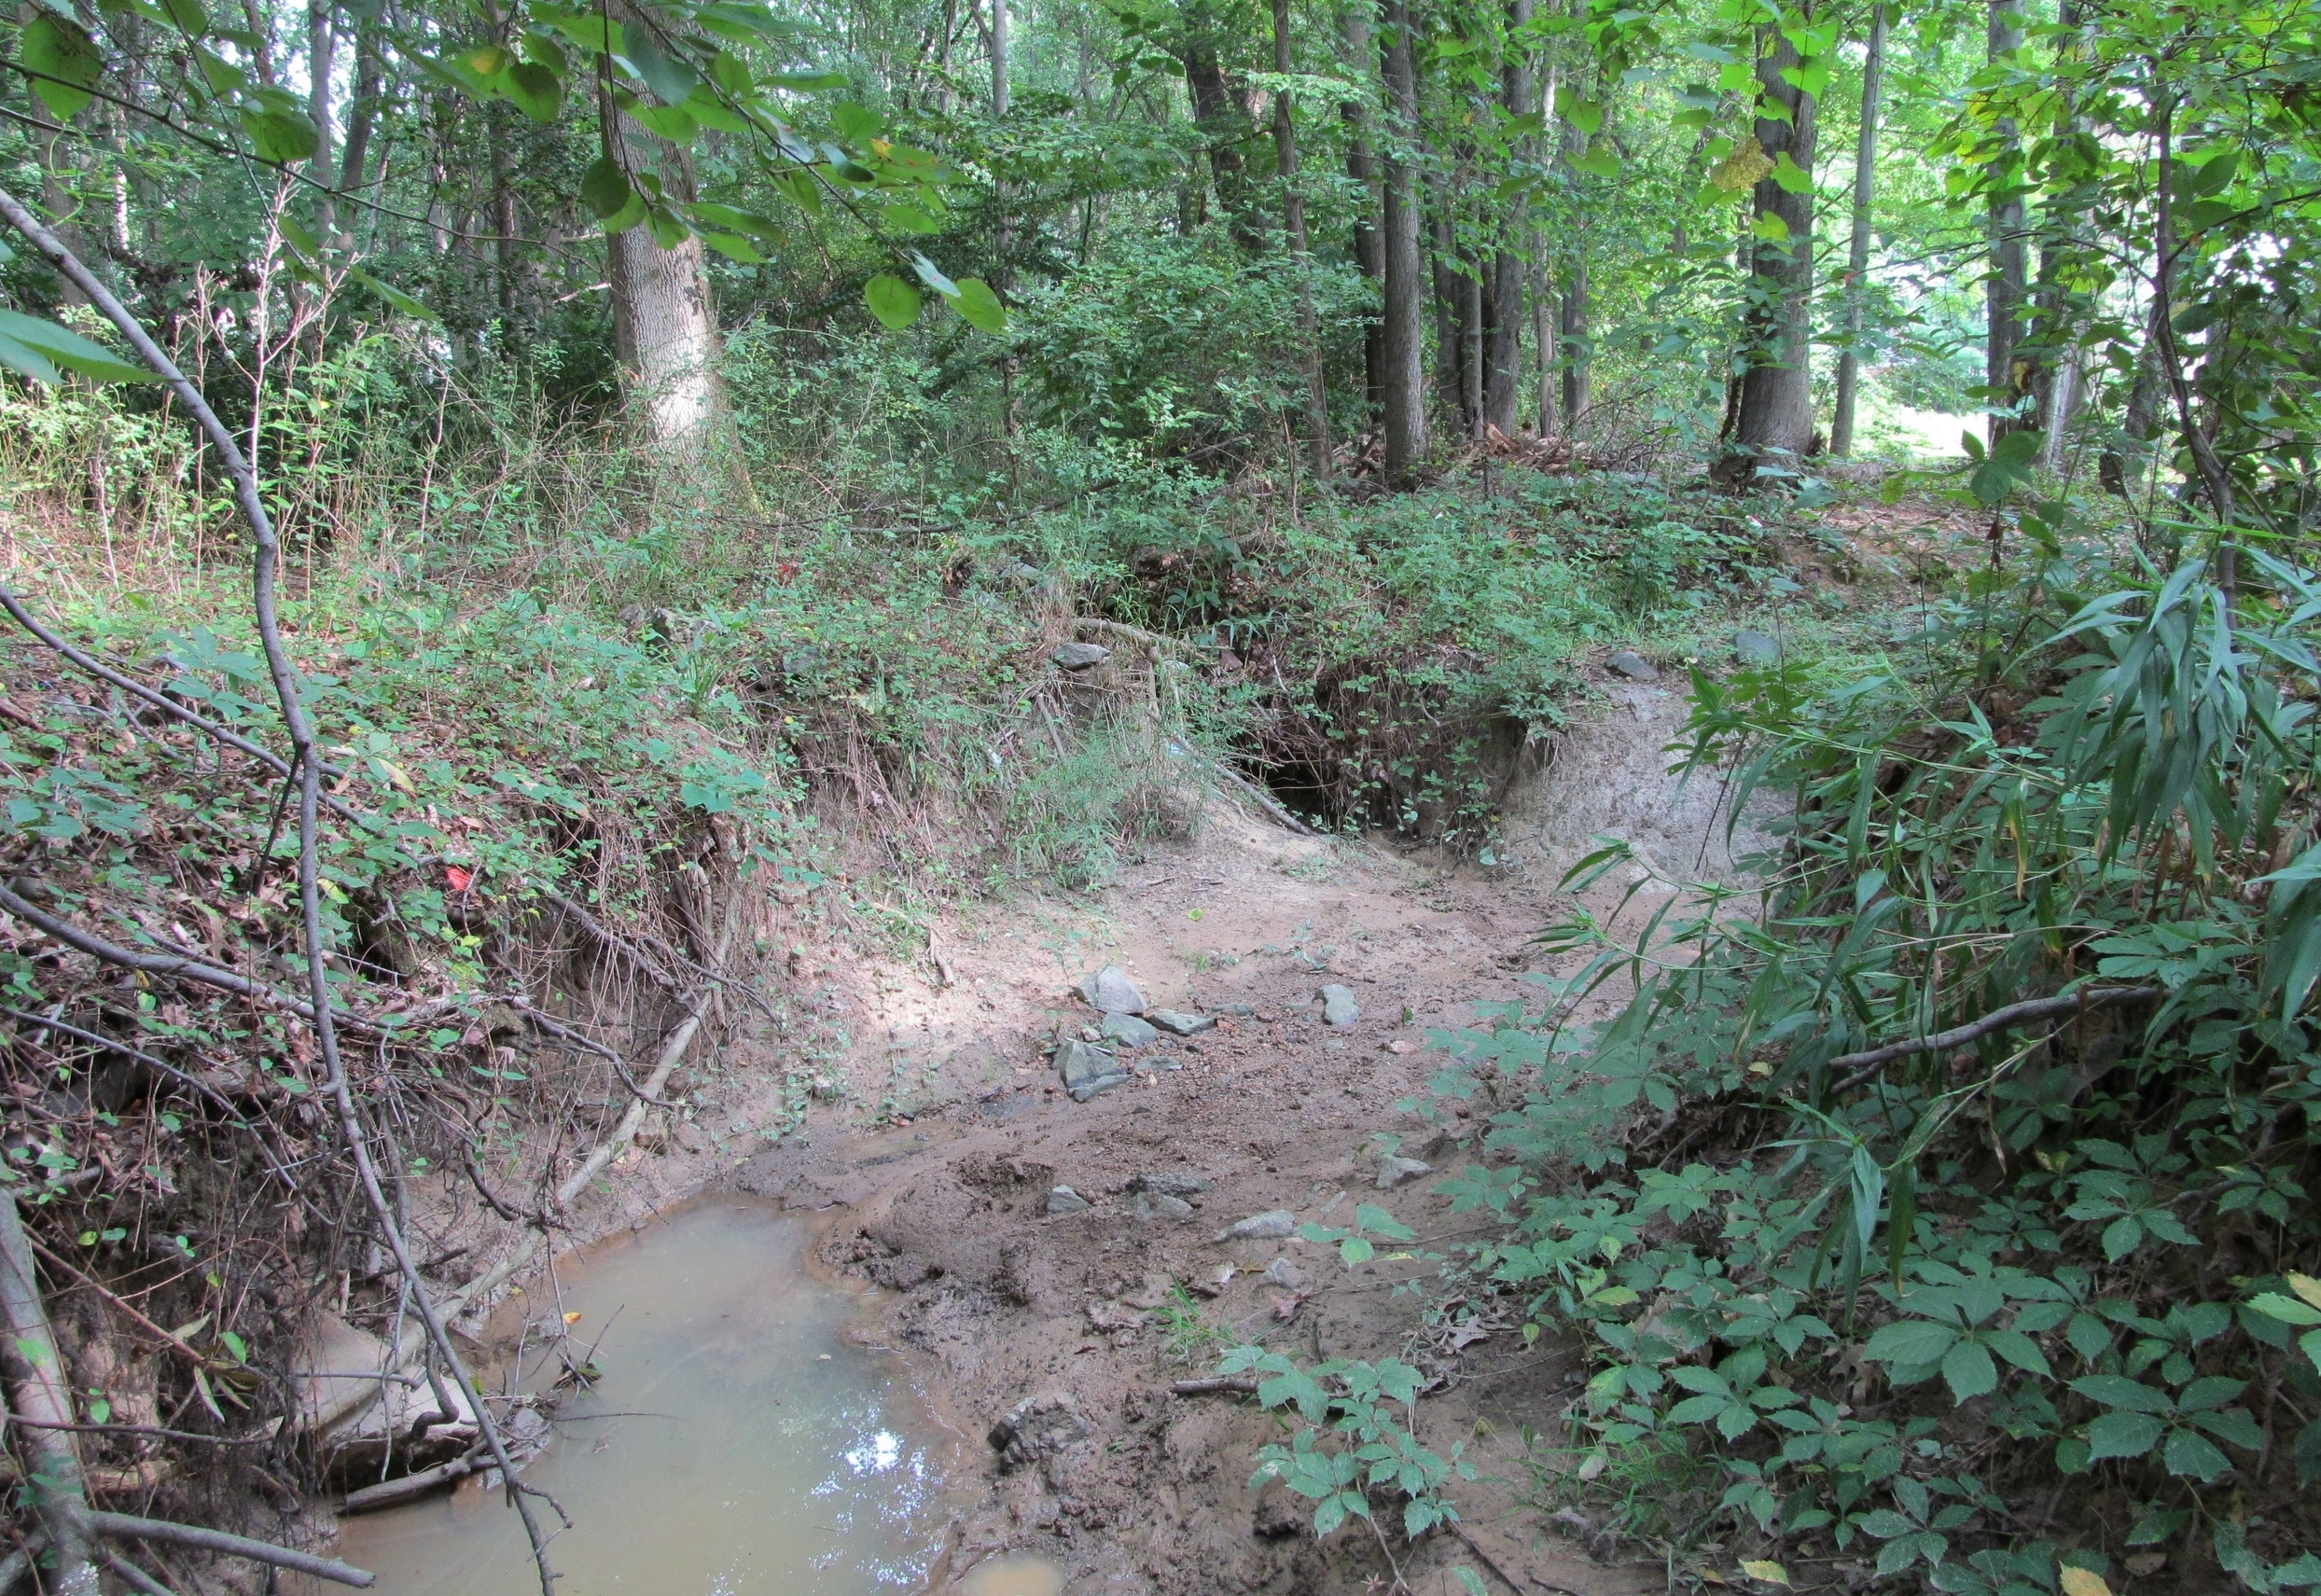 Before: This eroded stream channel in a neighborhood's narrow riparian corridor had exposed utility lines, a deteriorating bridge, and significant tree instability along the banks.